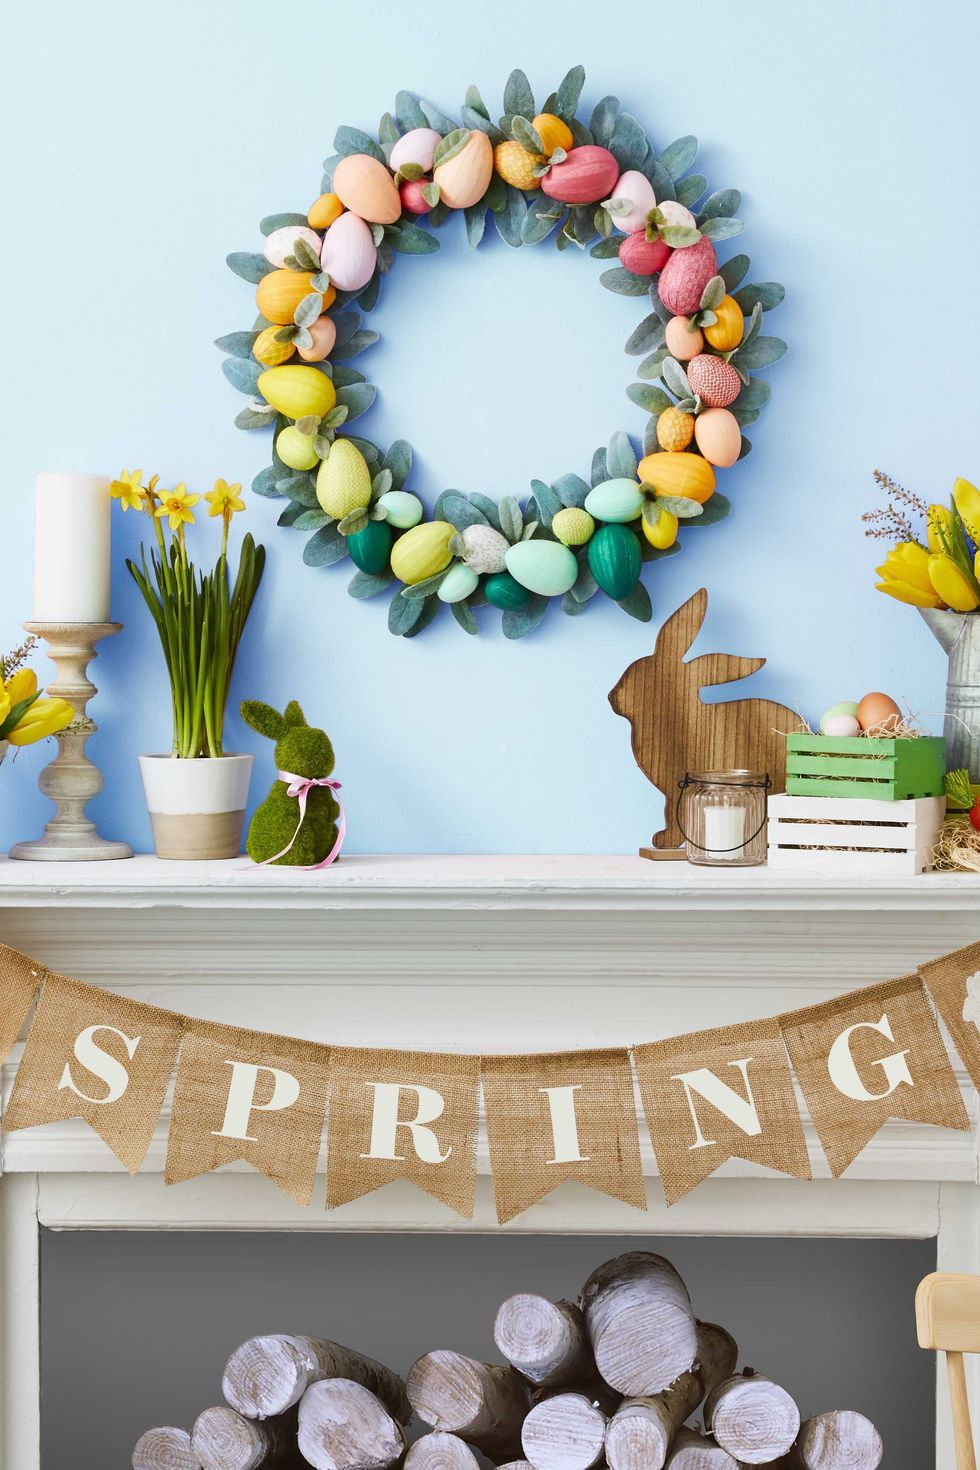 Happy Easter Banner Chicks Eggs Flowers Easter Spring Decorative Window Clings Reusable Stickers Decor Easter Decorations